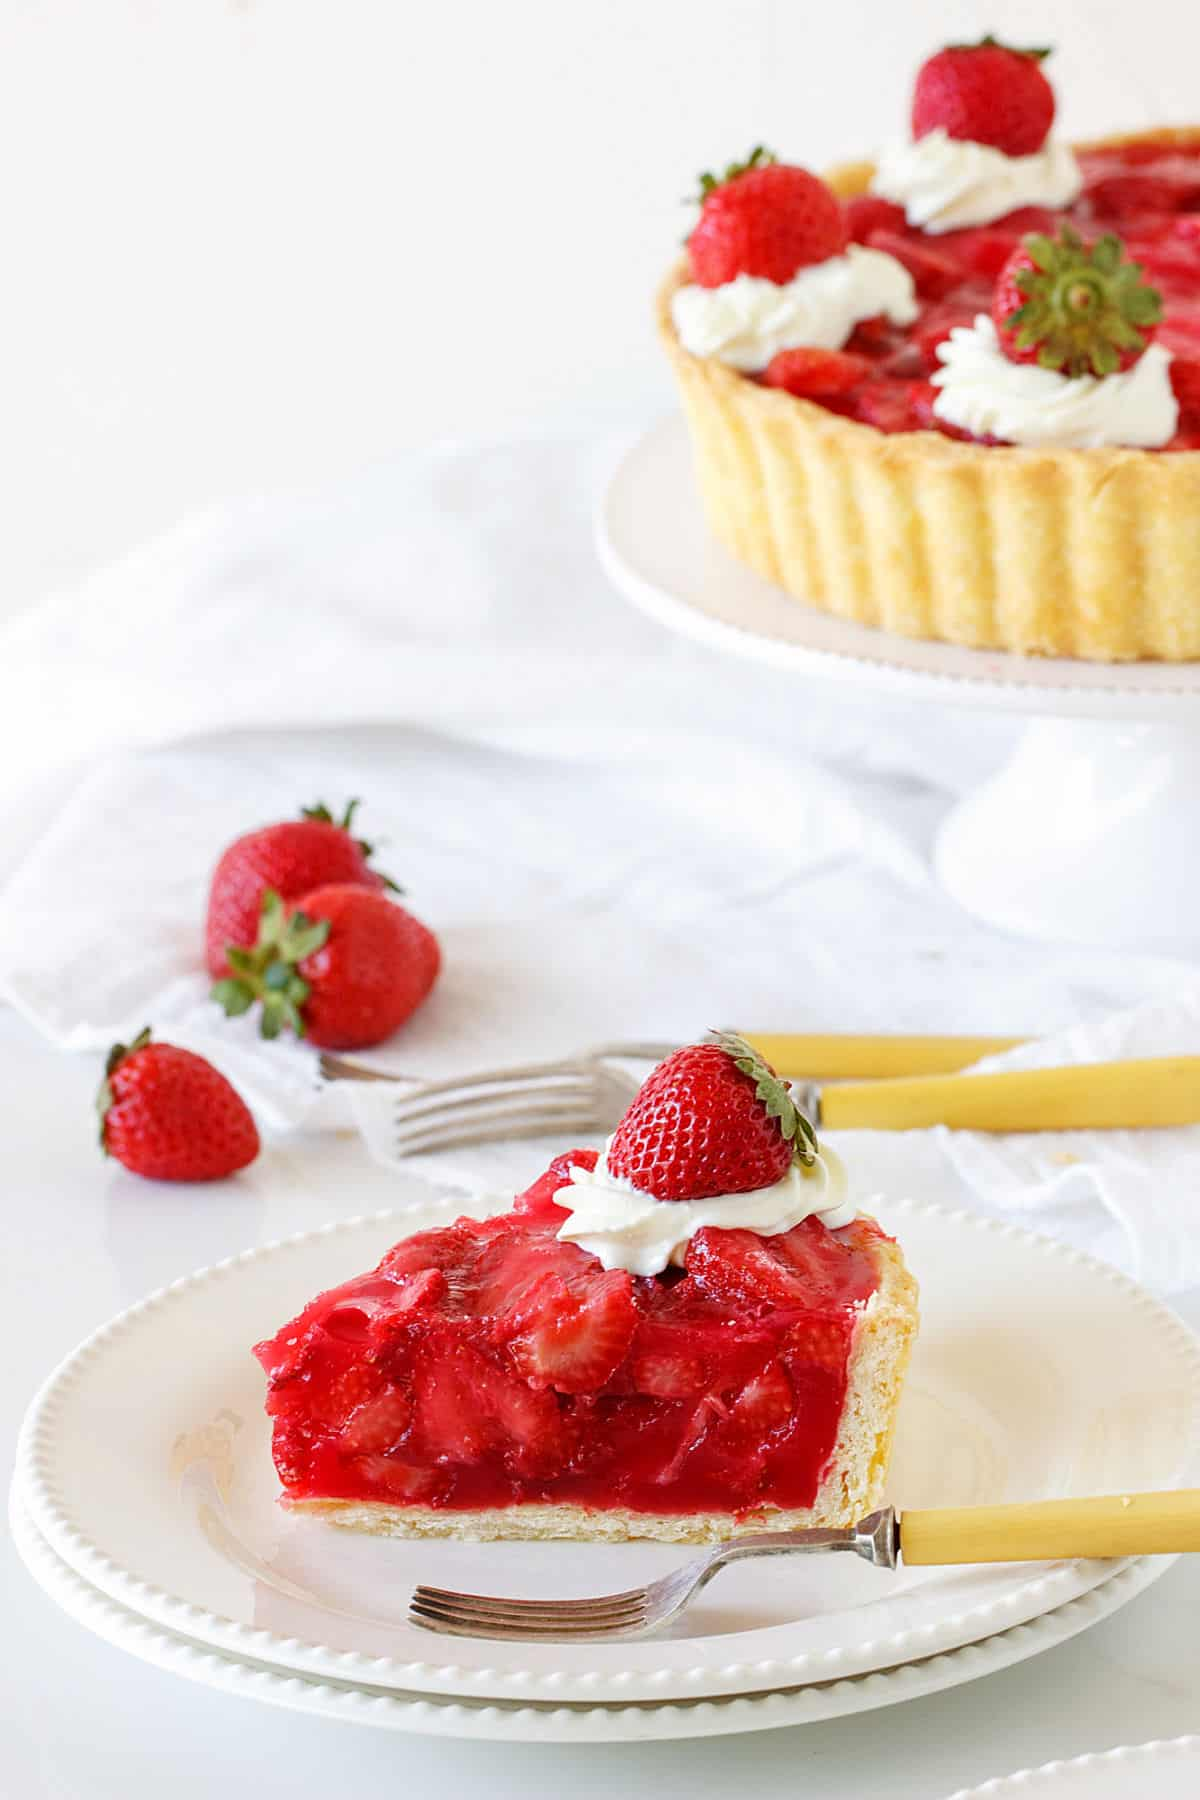 White background with partial strawberry pie on cake stand, single slice on white plate in front